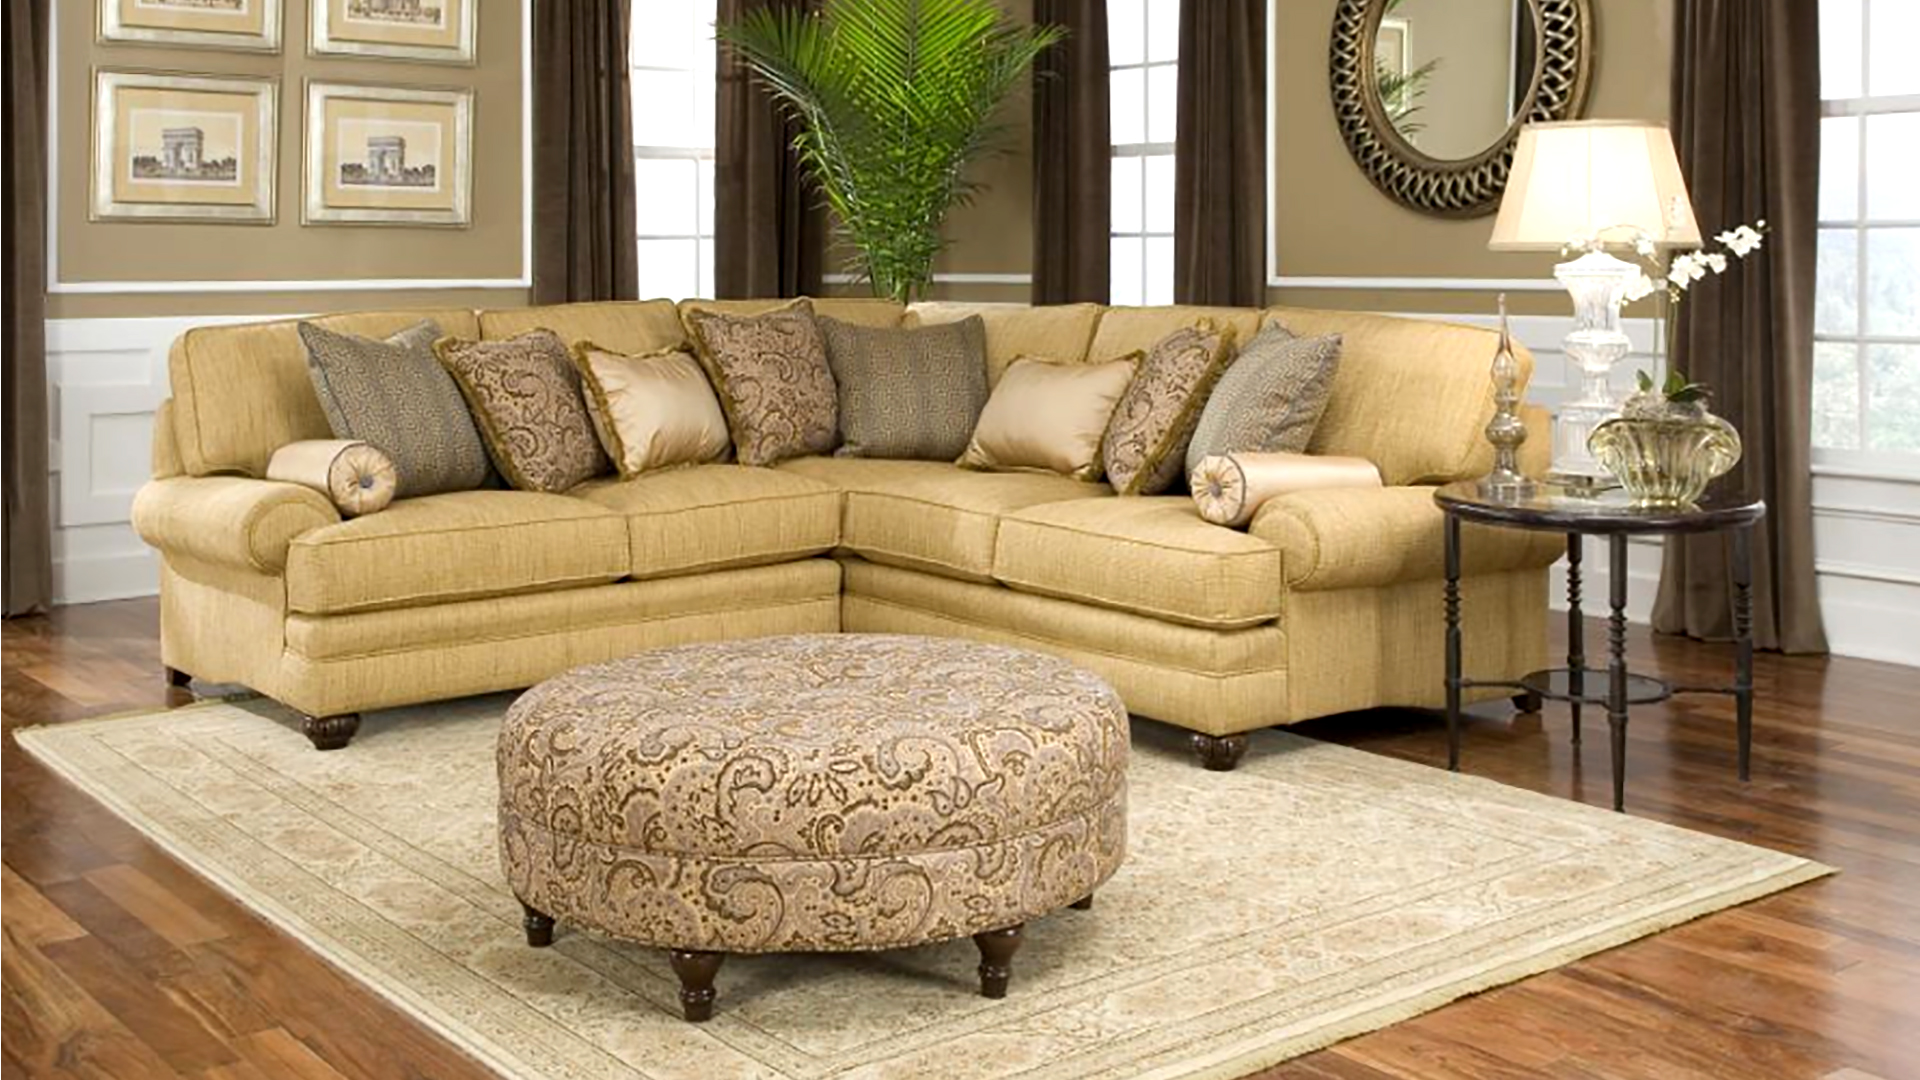 LR_SmithBros_sectional_gold